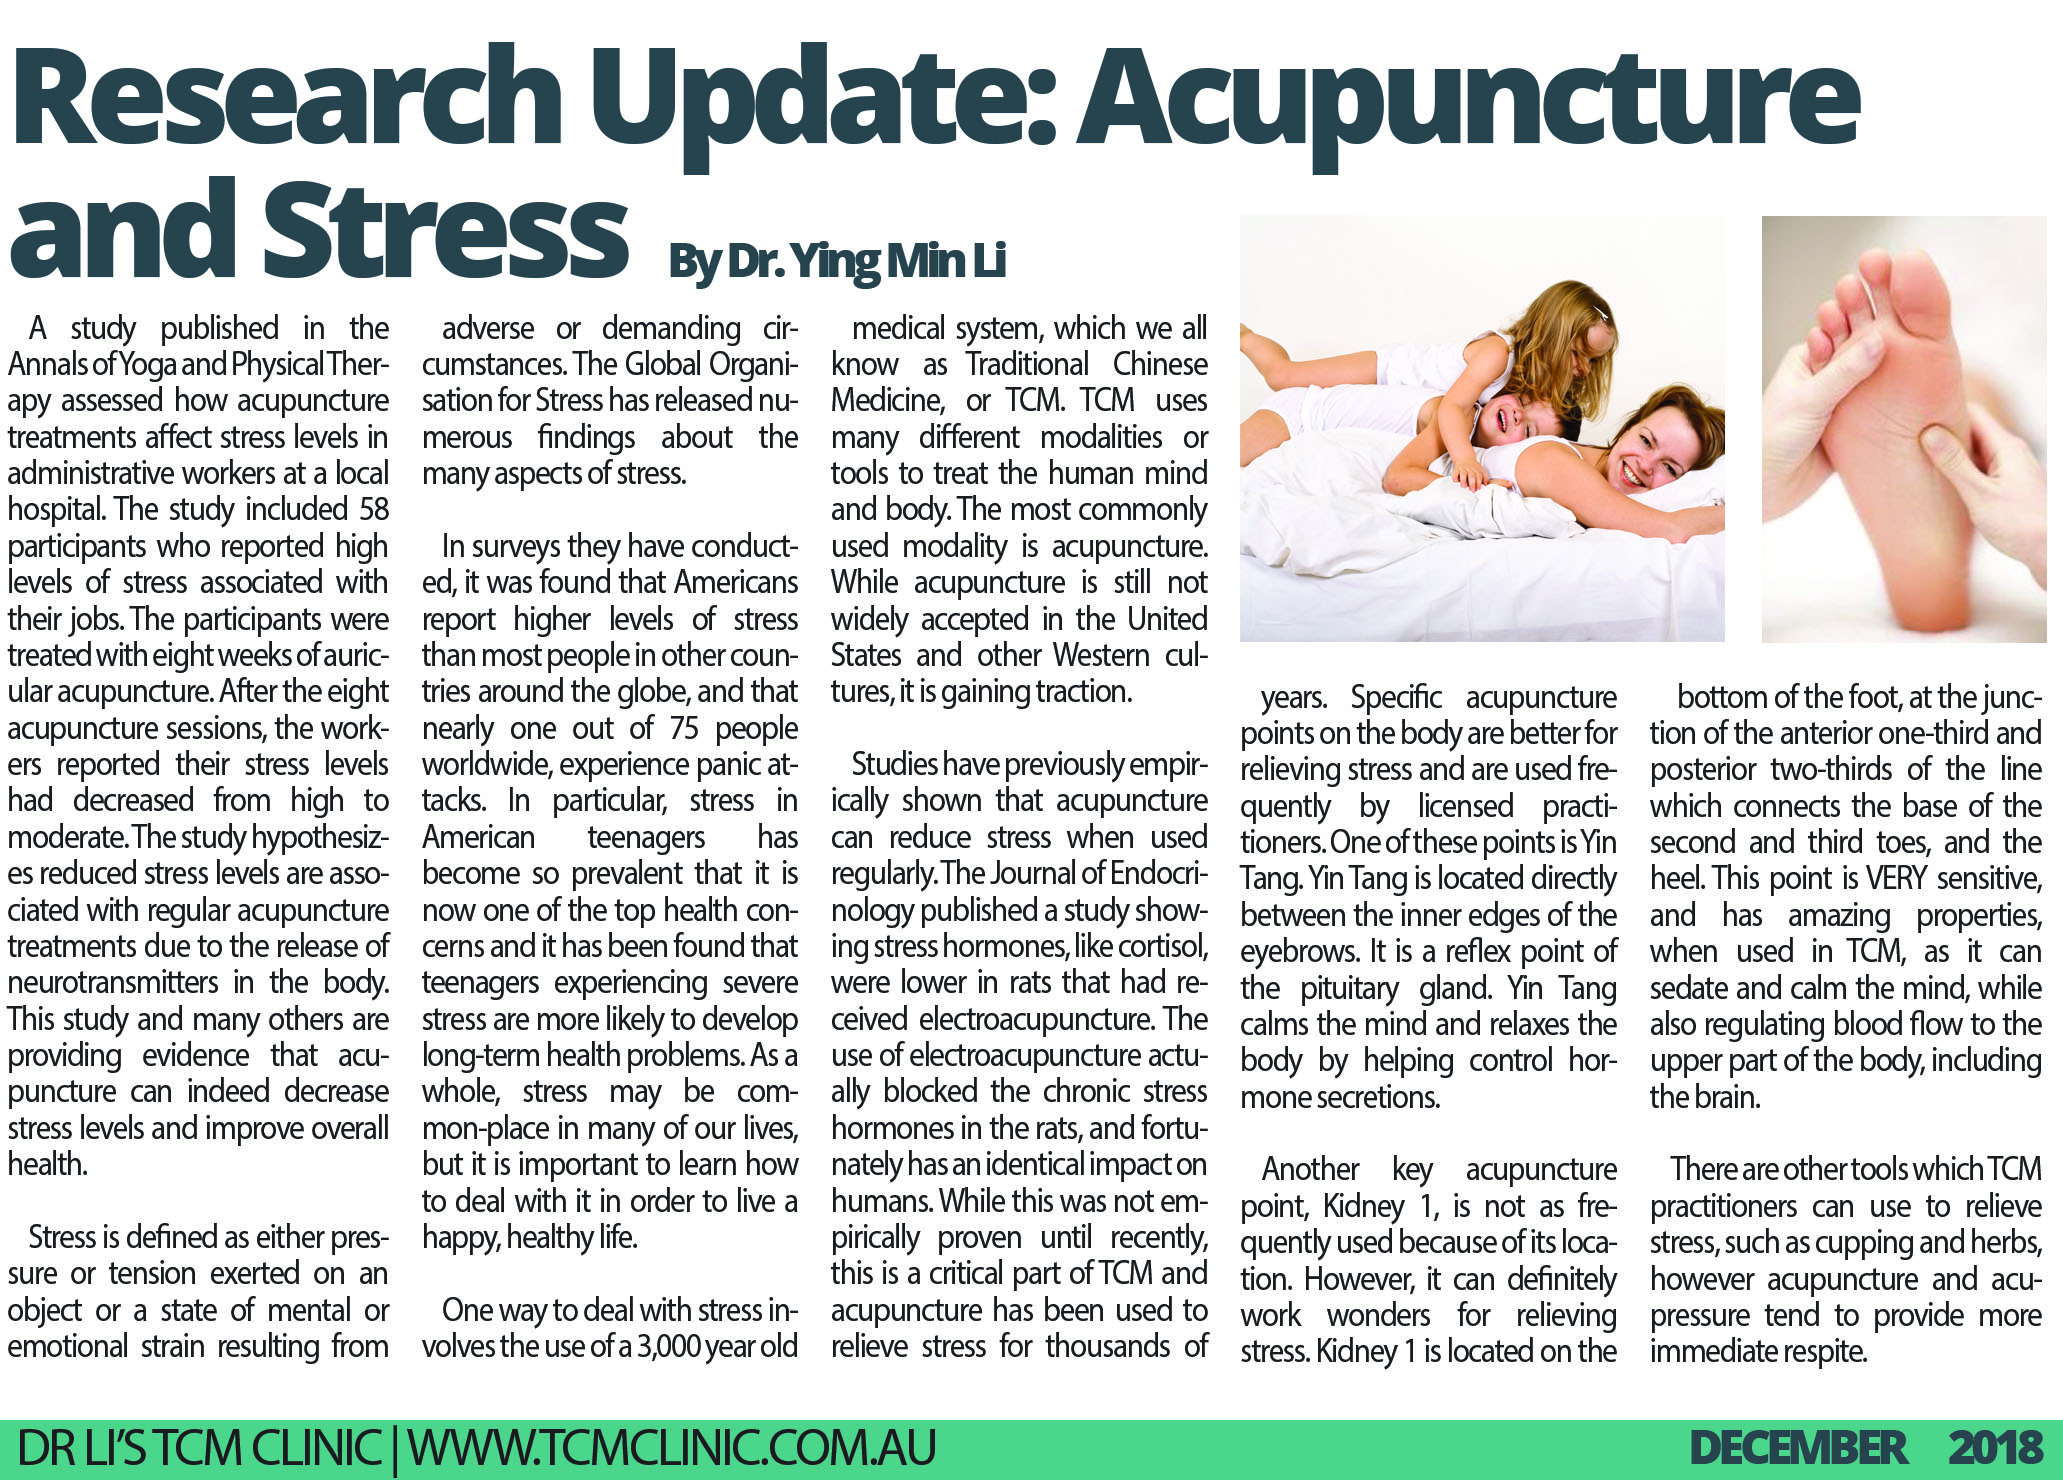 Acupuncture and Herbal Medicine for Stress Relief Research Article